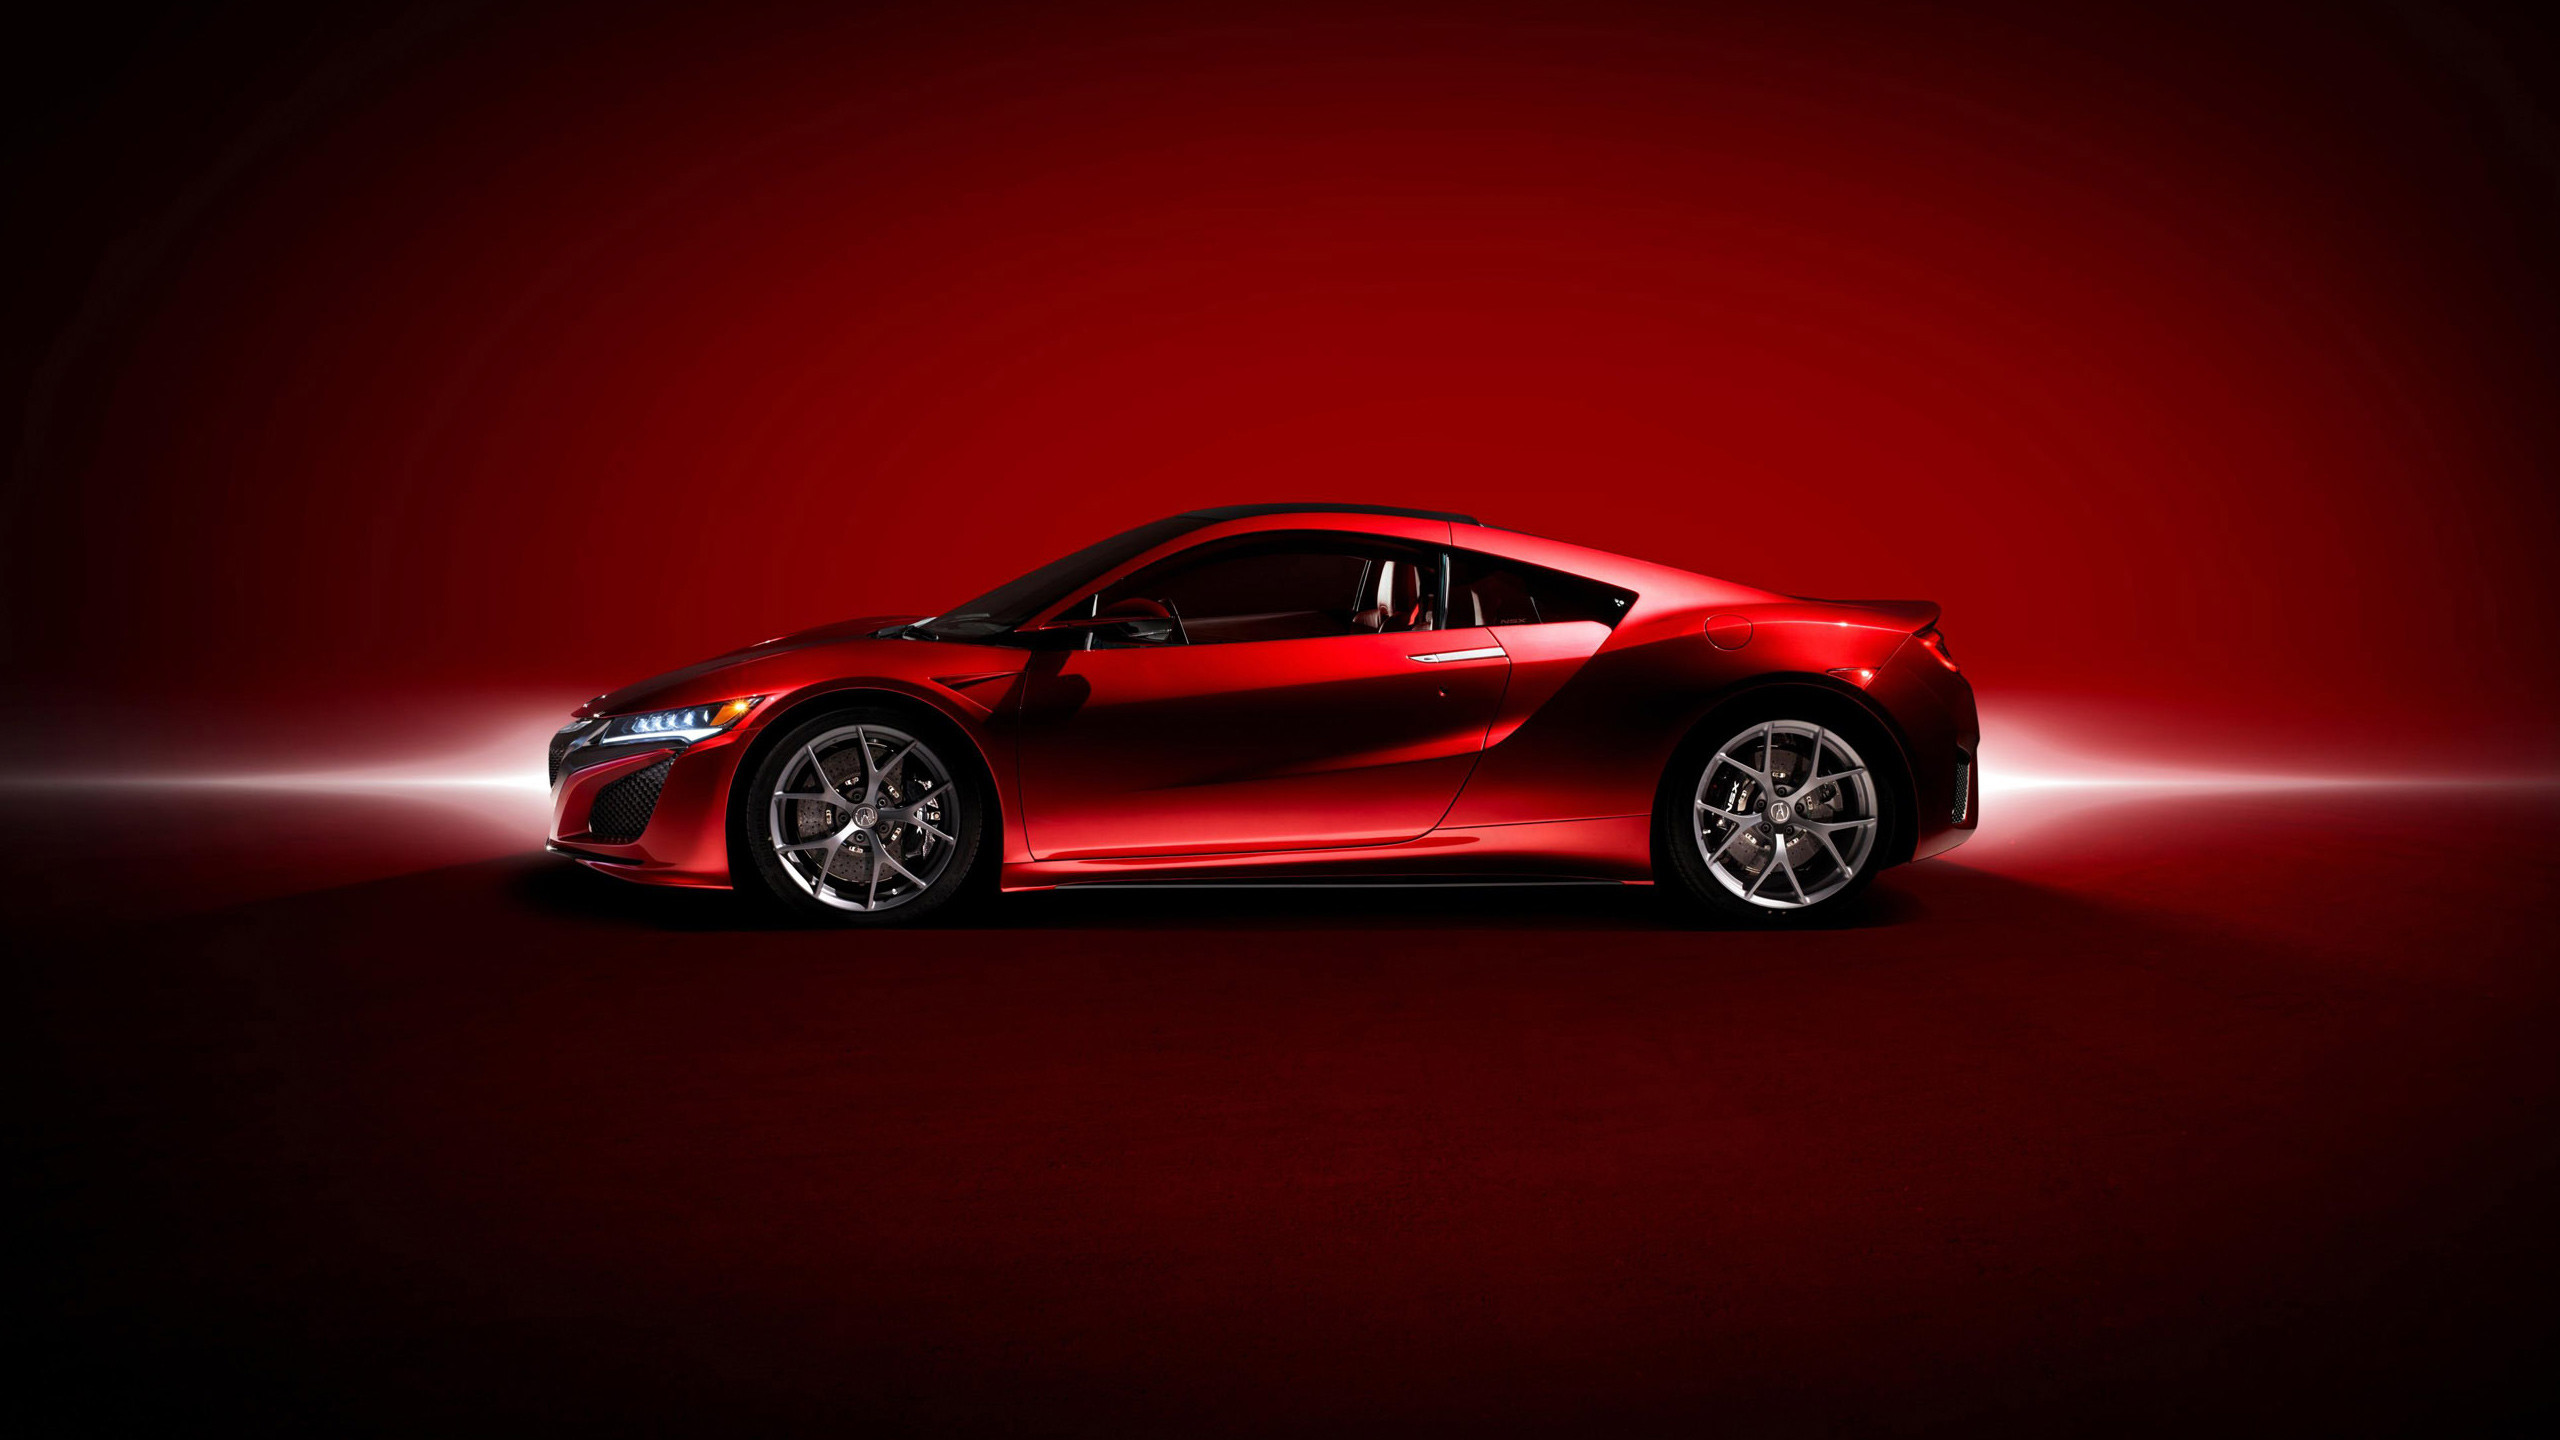 Acura Nsx R For Sale >> 2018 Acura Nsx Wallpapers ·①